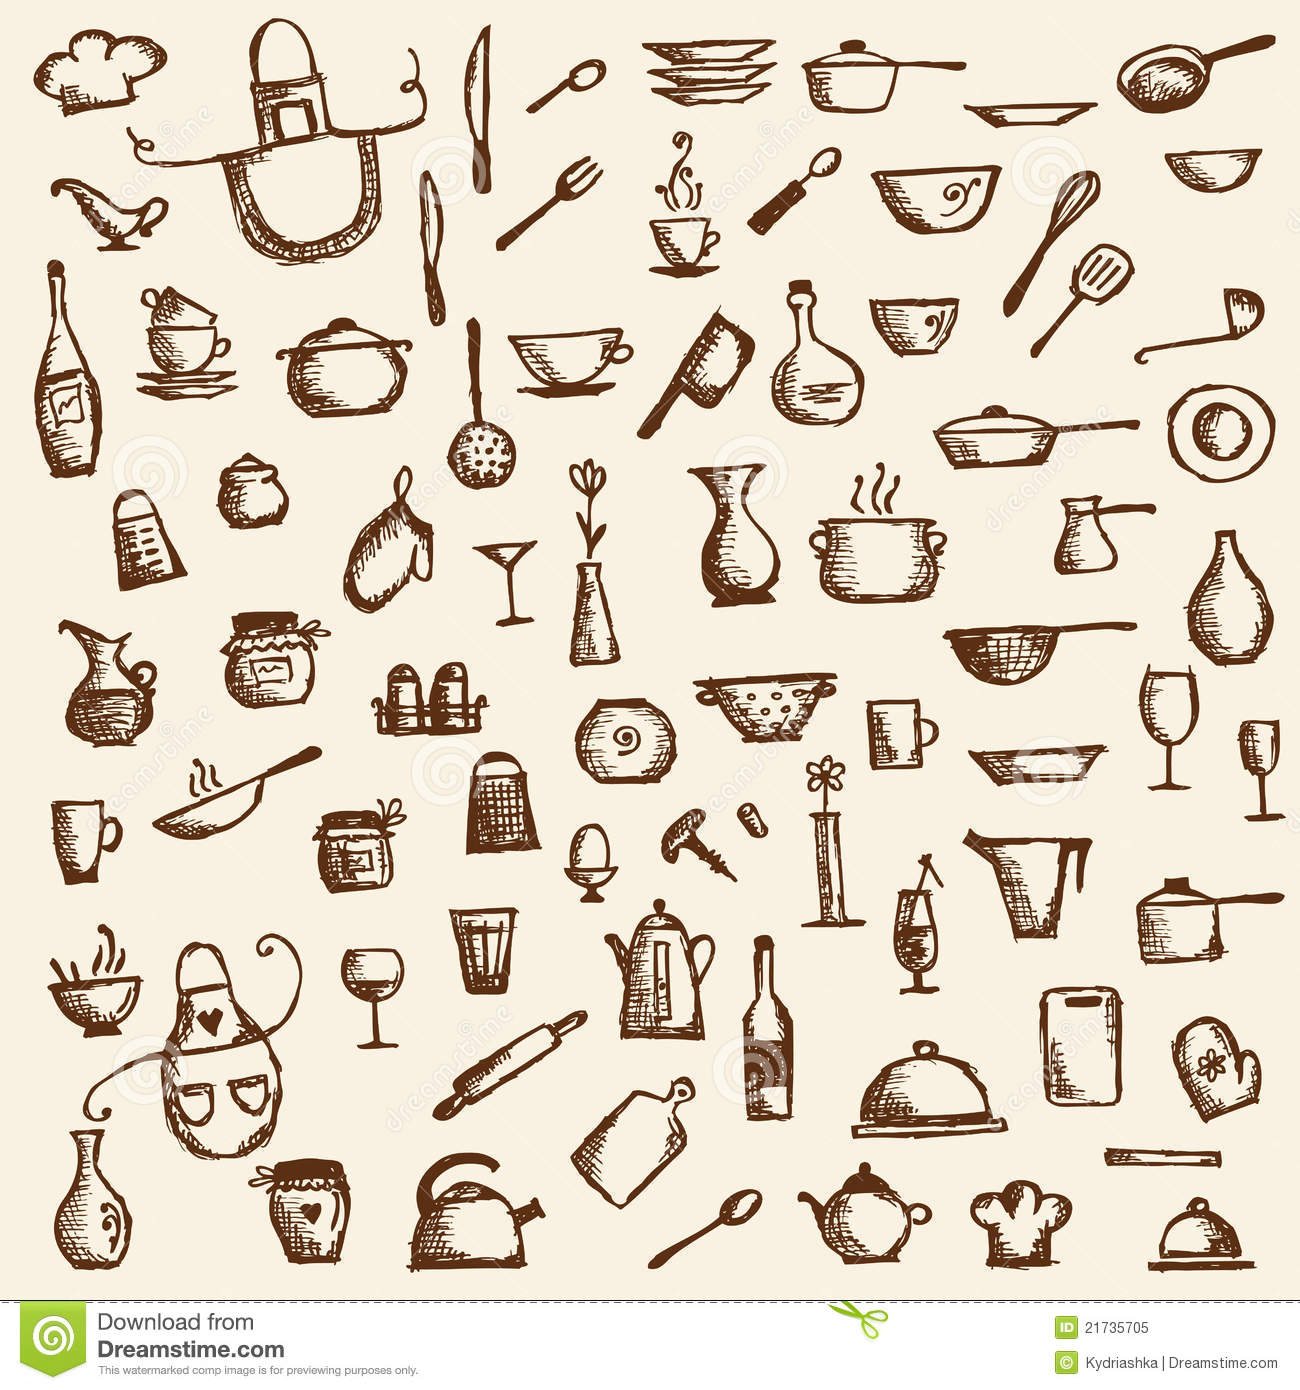 Cliparts Küche Gratis Kitchen Utensils Sketch Drawing For Your Design Royalty